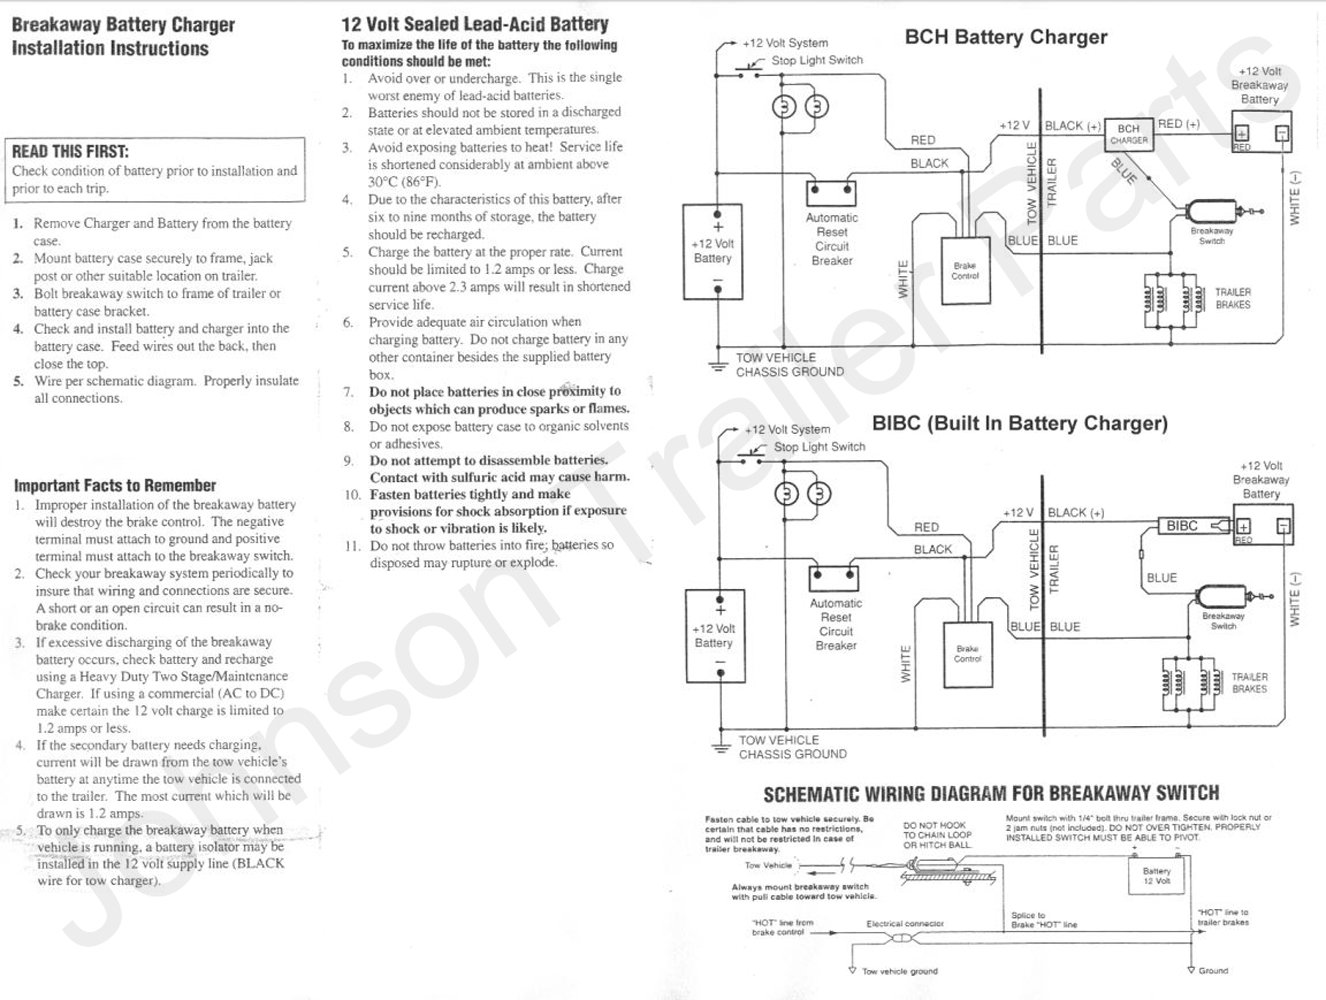 718PvzZr5ZL._SL1326_ amazon com trailer breakaway kit led readout breakaway switch tekonsha breakaway system wiring diagram at n-0.co